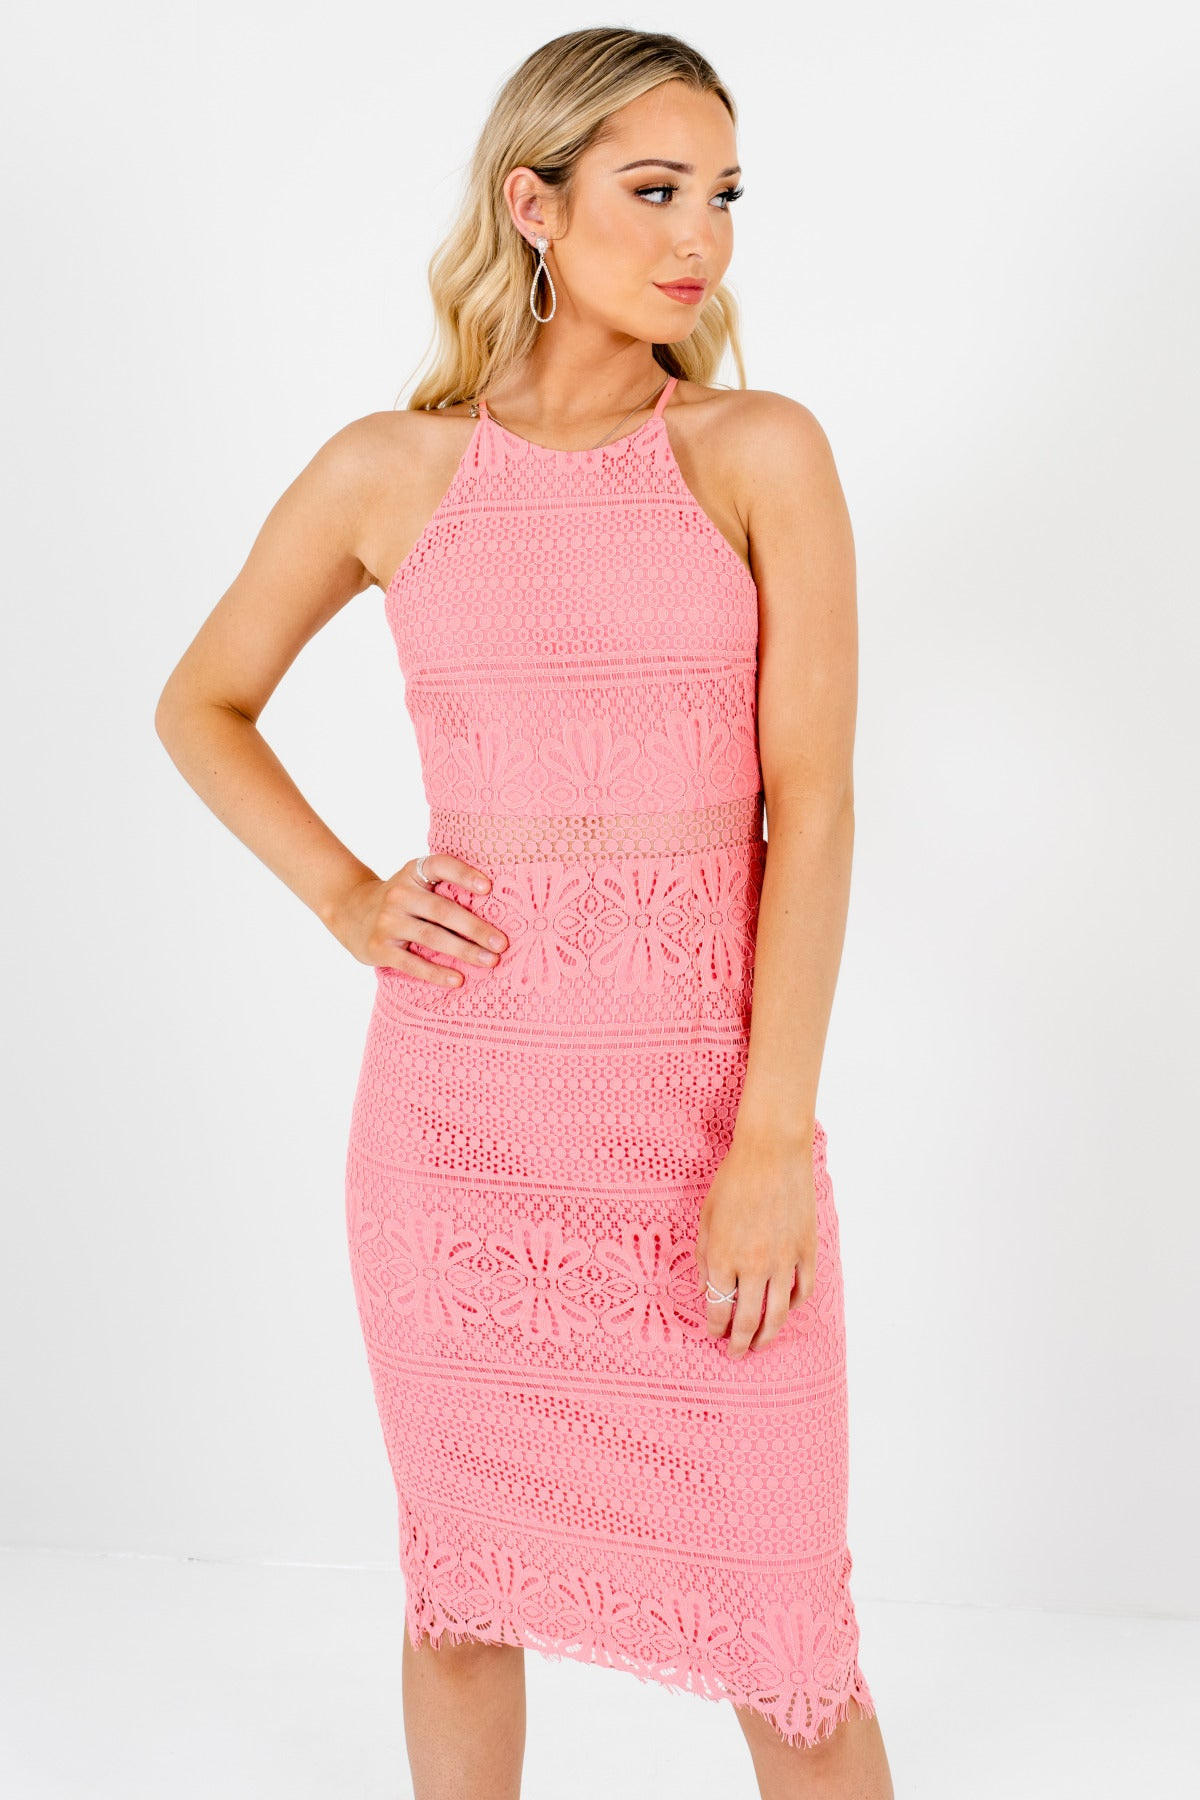 Pink Crochet Lace Overlay Knee-Length Dresses Affordable Online Boutique